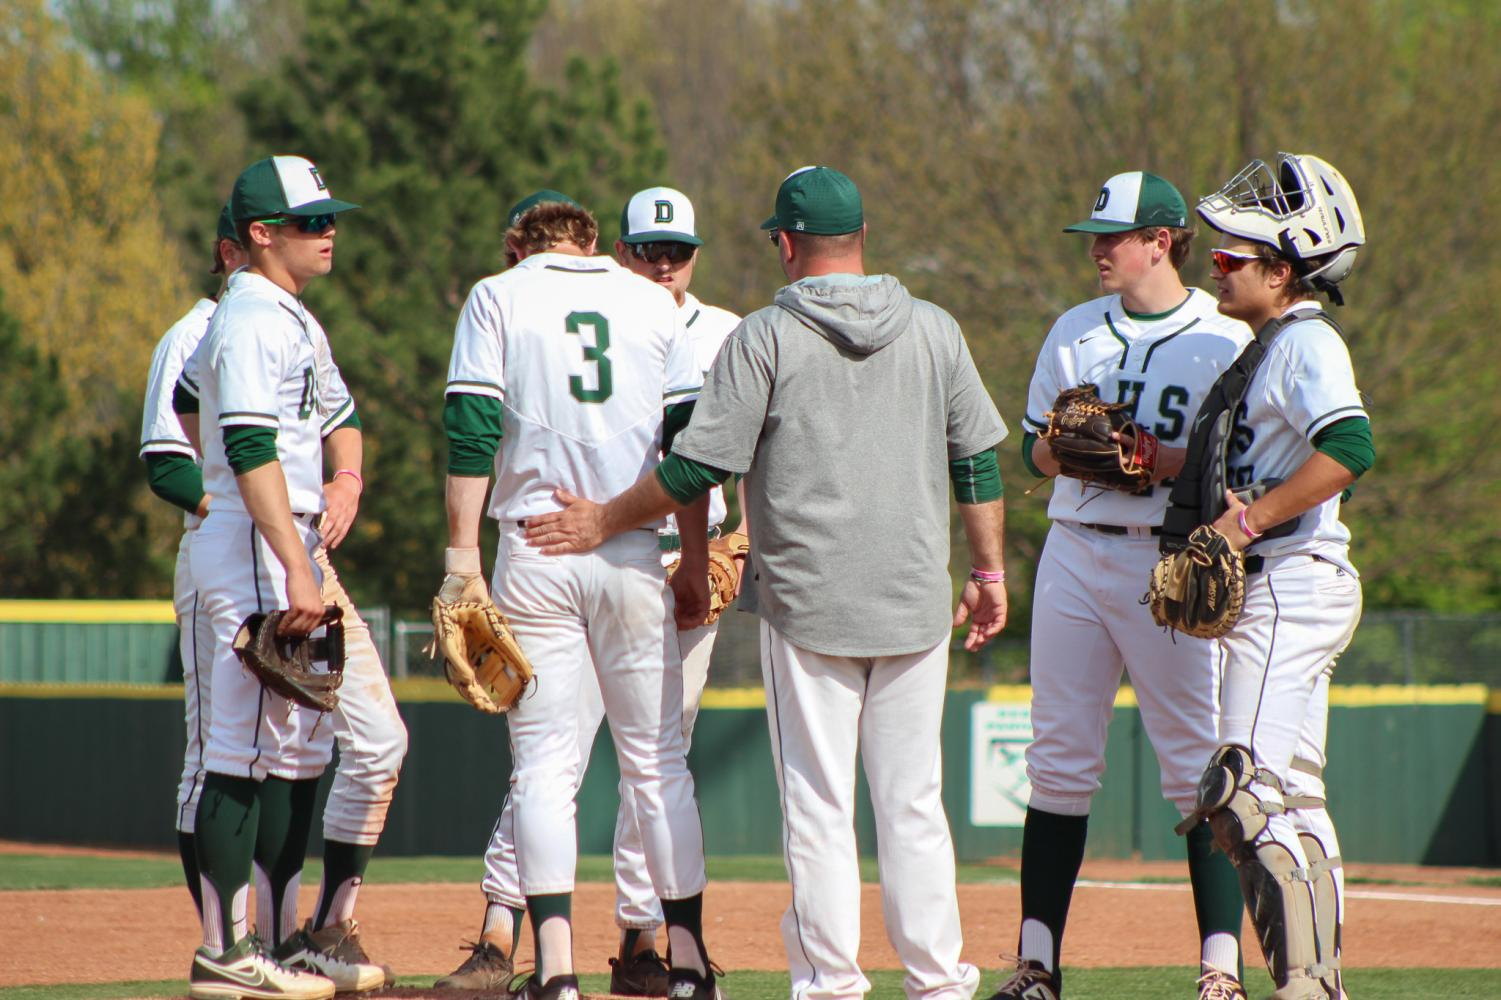 Day+time+infield+huddle